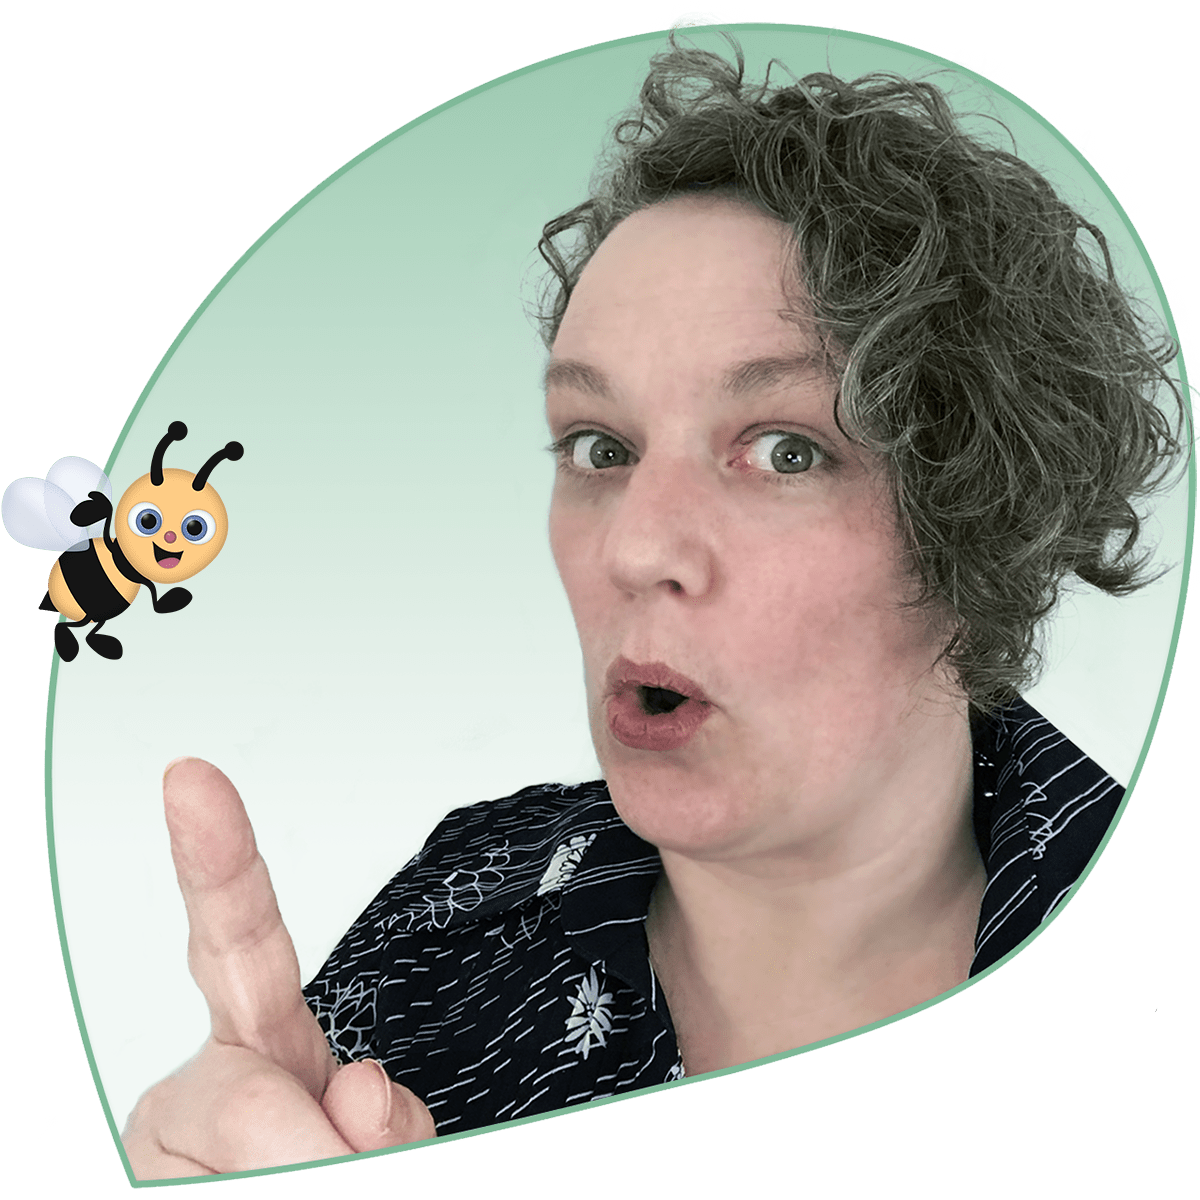 Colette looks at the camera while pointing at Bee